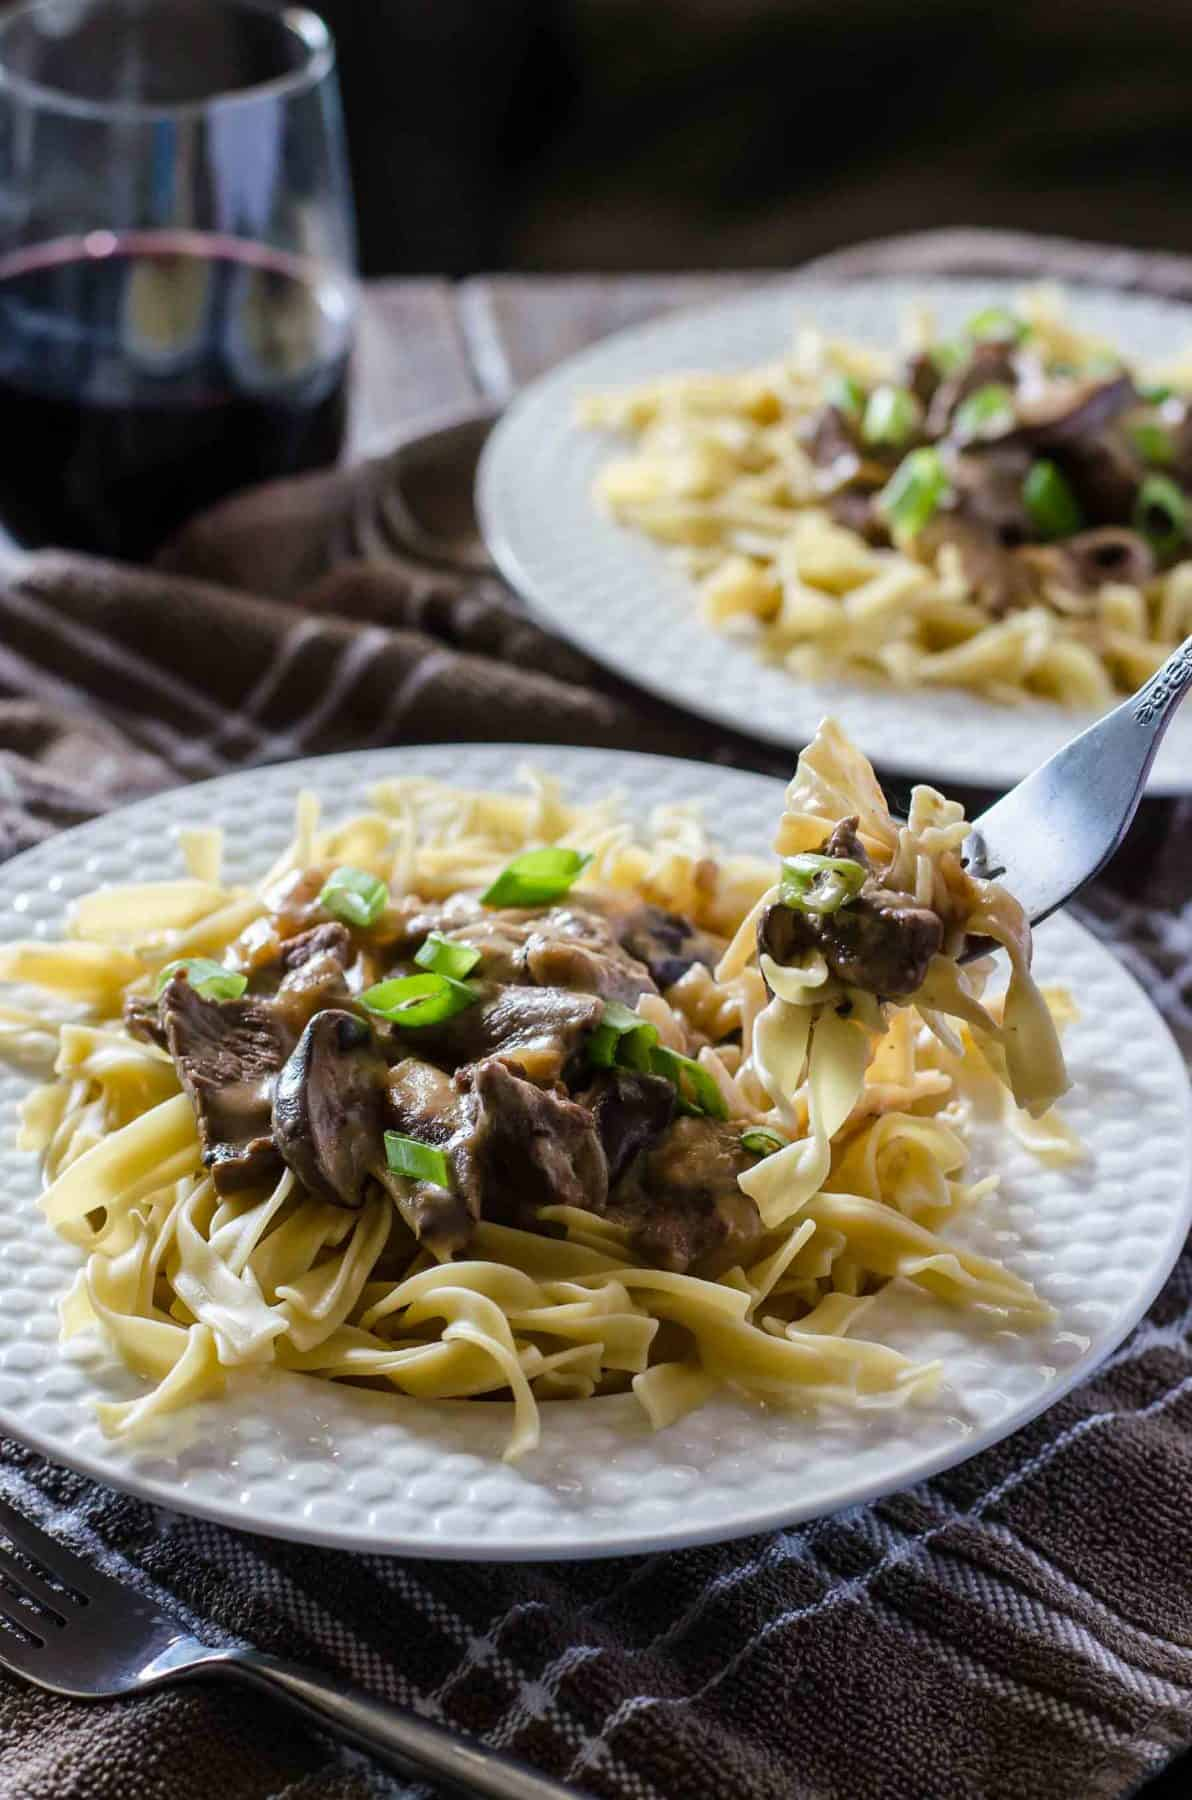 This classic Beef Stroganoff recipe comes together in less than 30 minutes! Choose your favorite cut of steak and cook it in an amazing creamy mushroom sauce, then serve it all over egg noodles for a fabulous hot lunch or dinner.